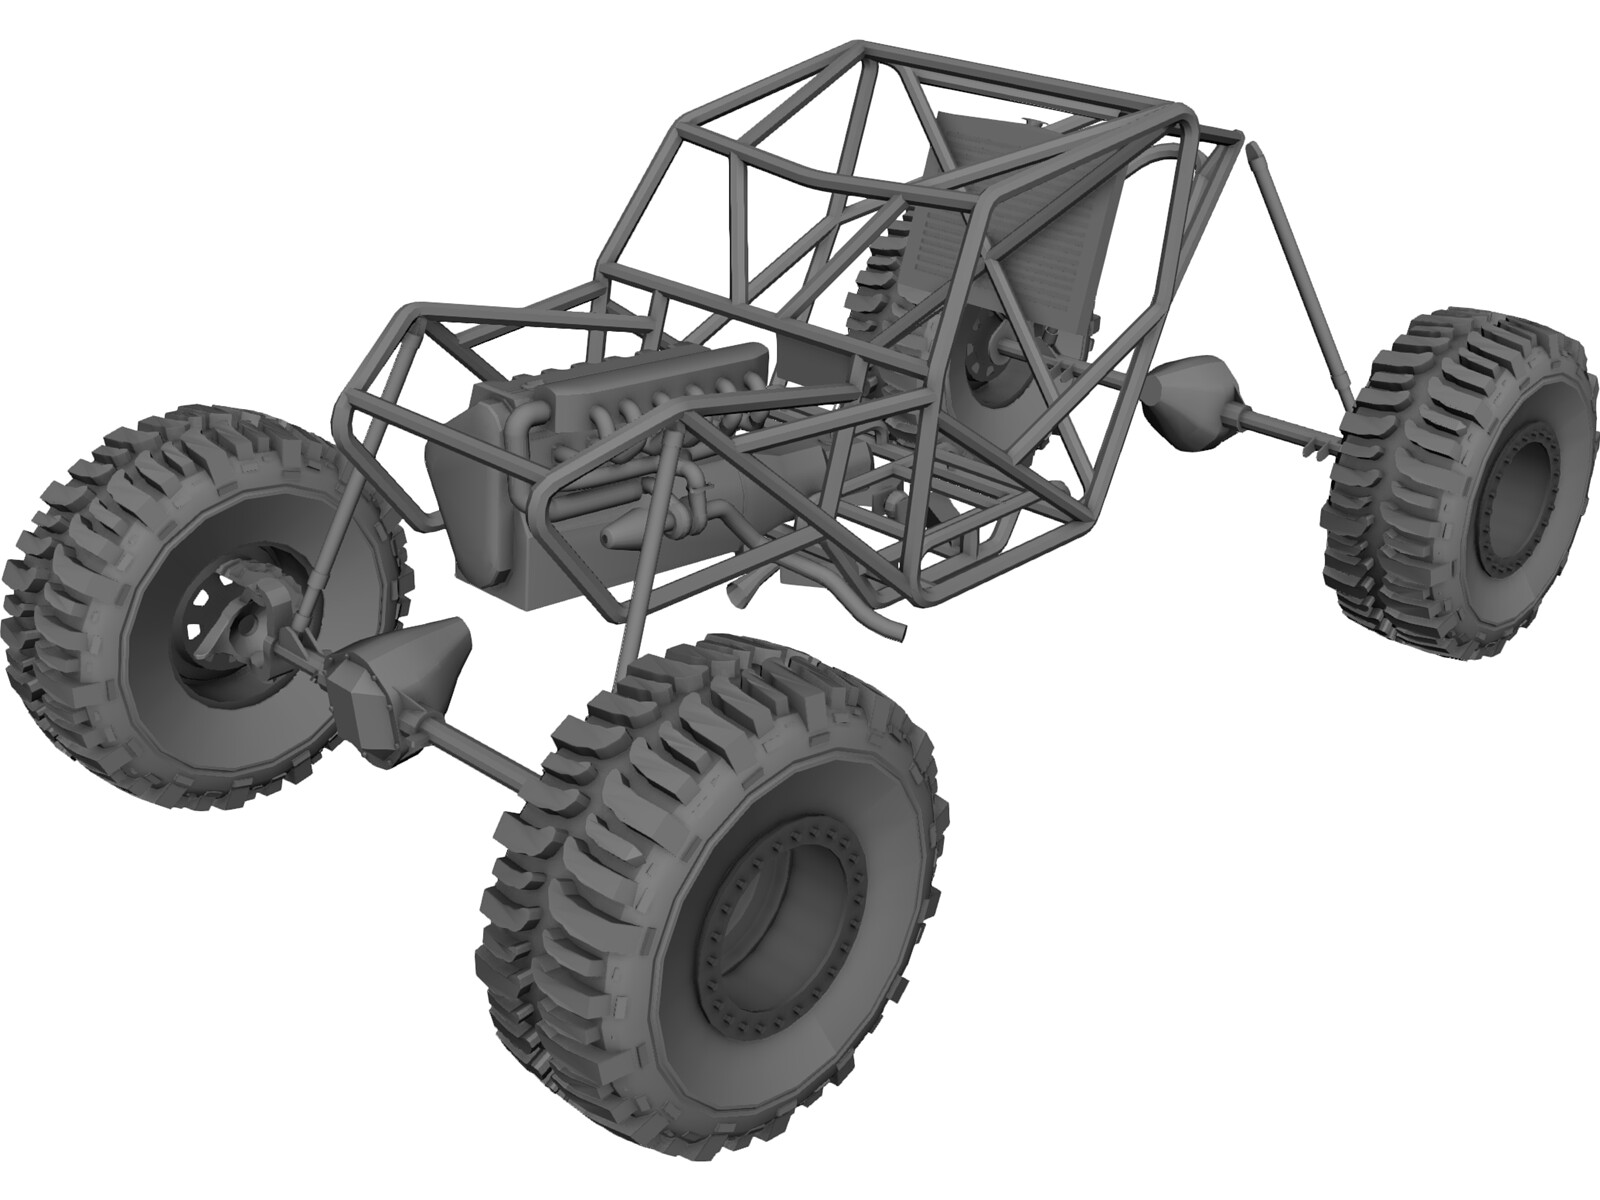 Proto Tube Rock Crawler Chassis 3D Model - 3D CAD Browser